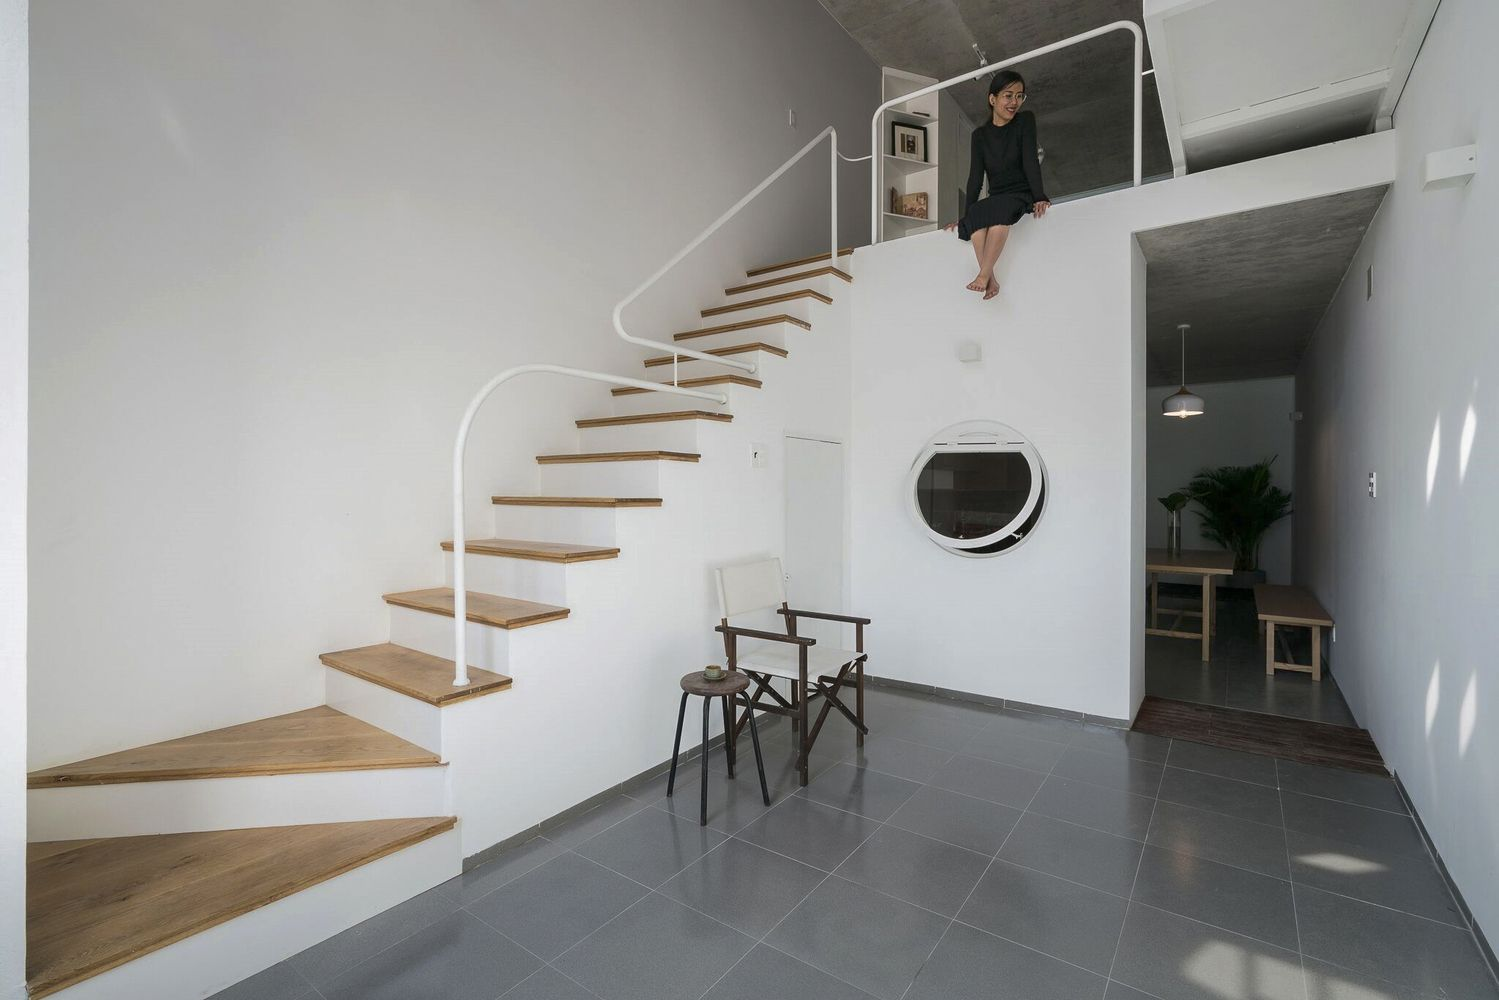 Home treppen design-ideen gallery of theus house  g architects    architects galleries